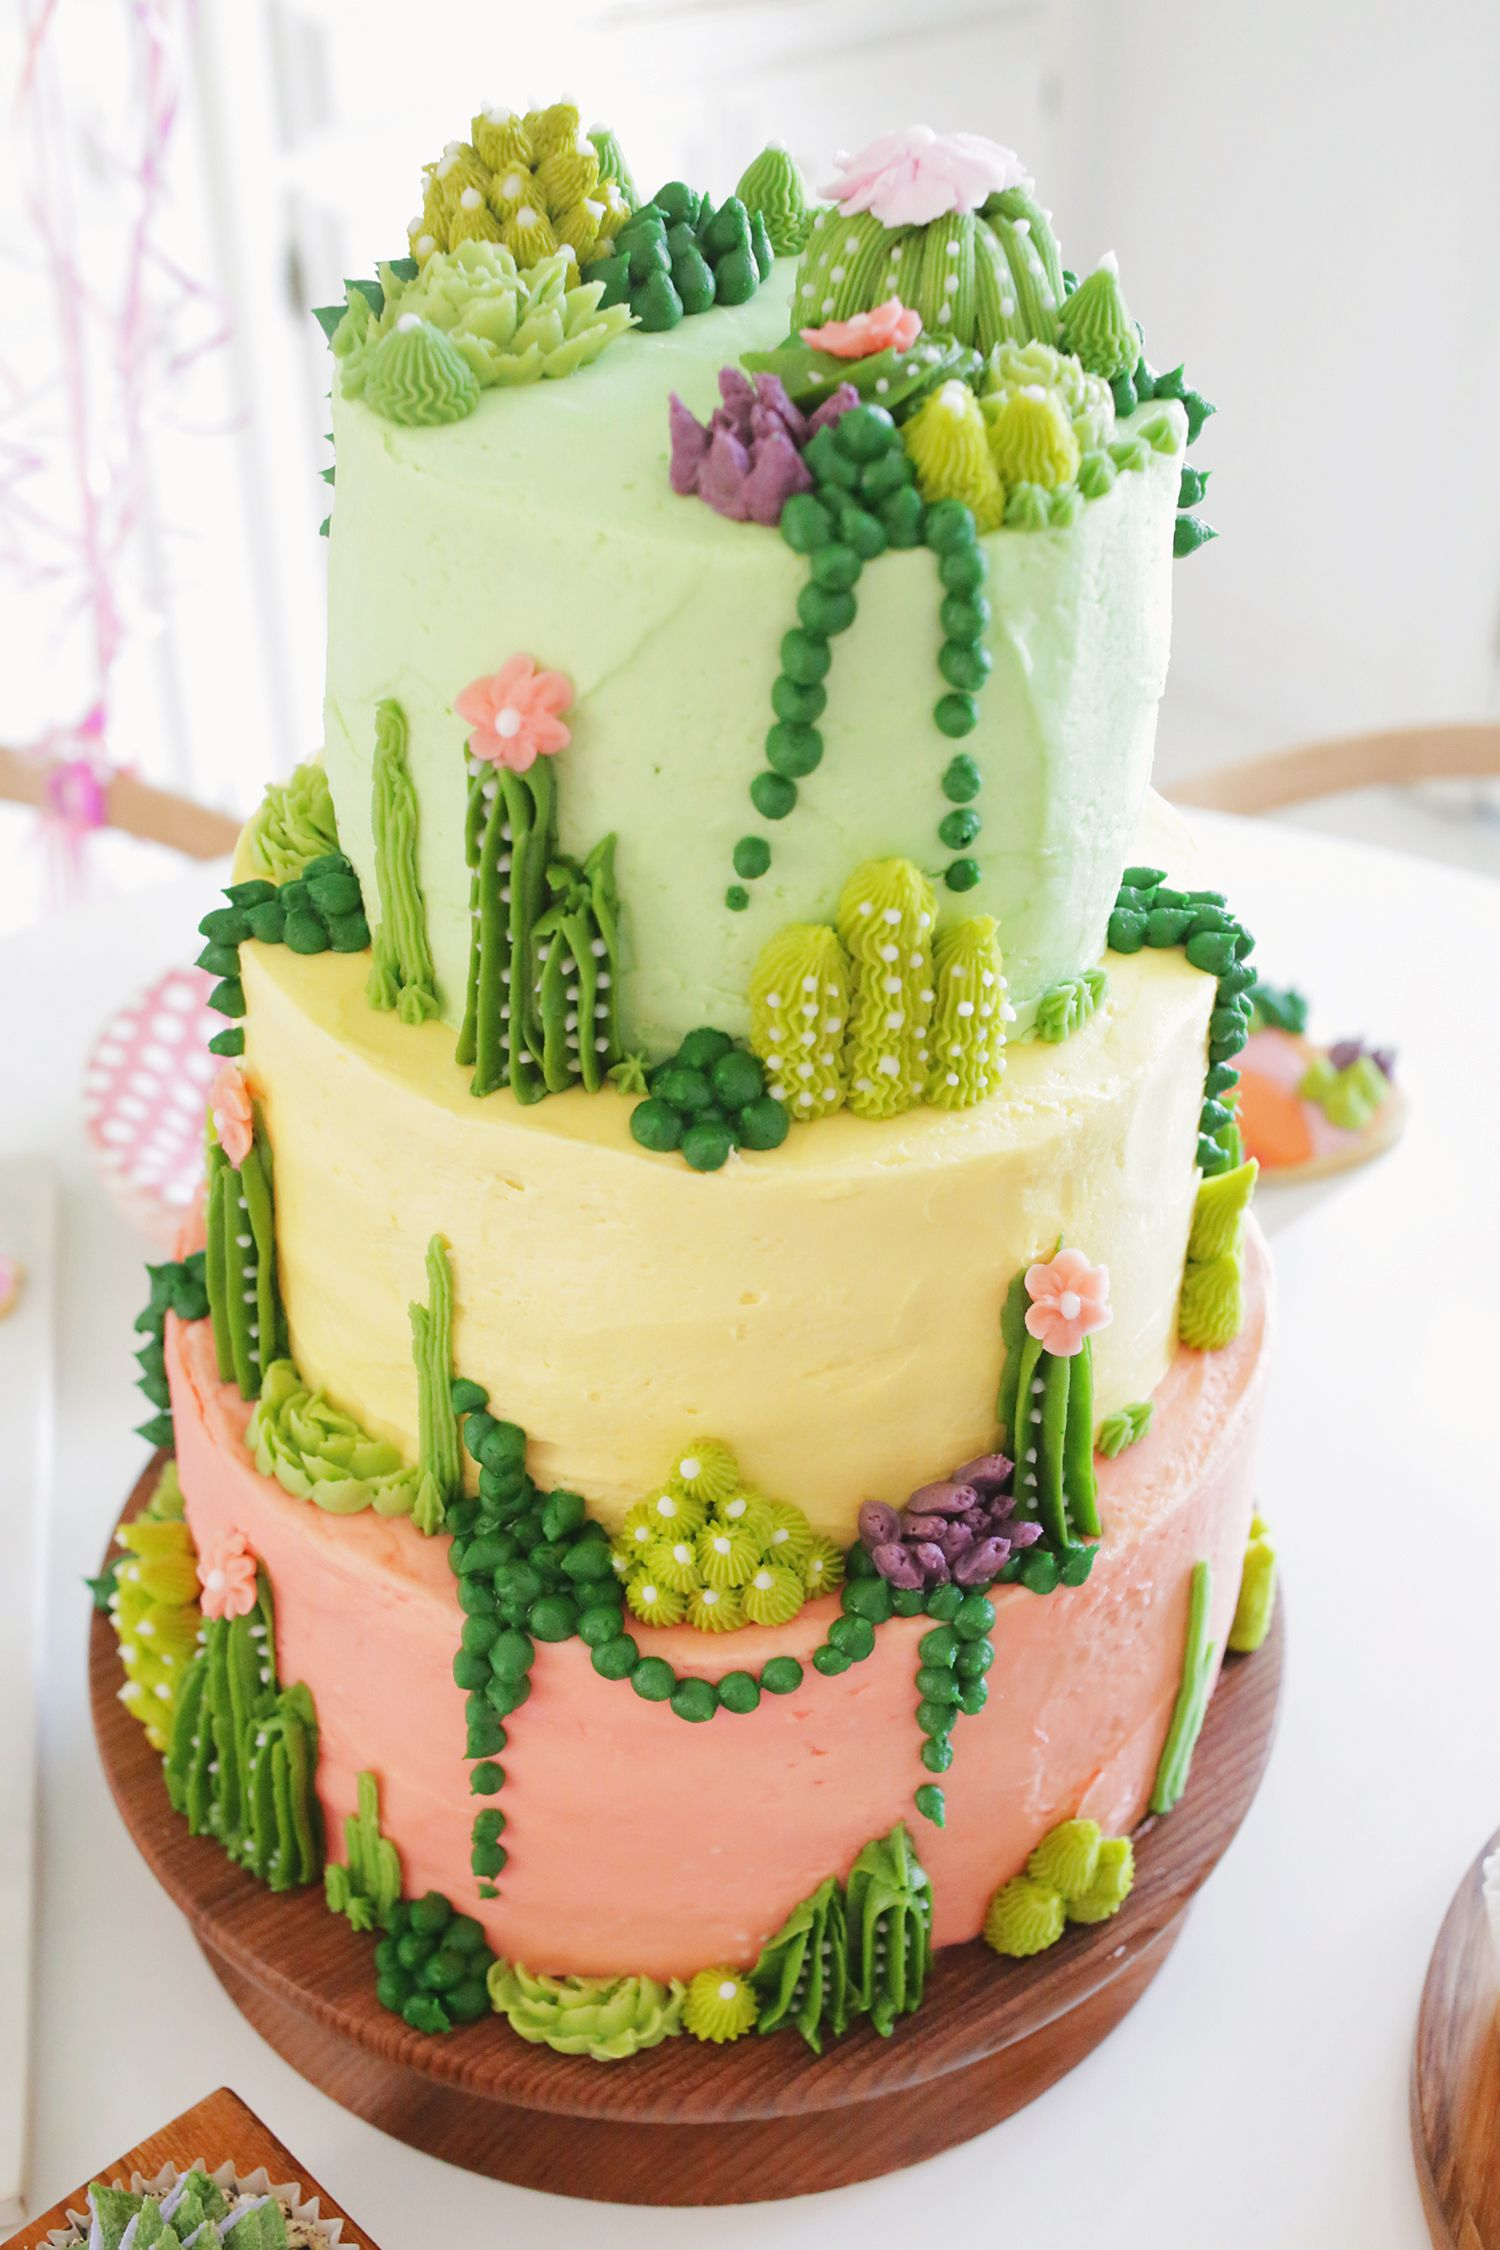 Lauras Palm Springs Themed Baby Shower Showers With Joann Kue By Hbahar Bakery Pal How Adorable Is This Succulent Tiered Cake Whether Youre Looking For Dessert Inspiration Cute Party Ideas Or Anything In Between Gorgeous